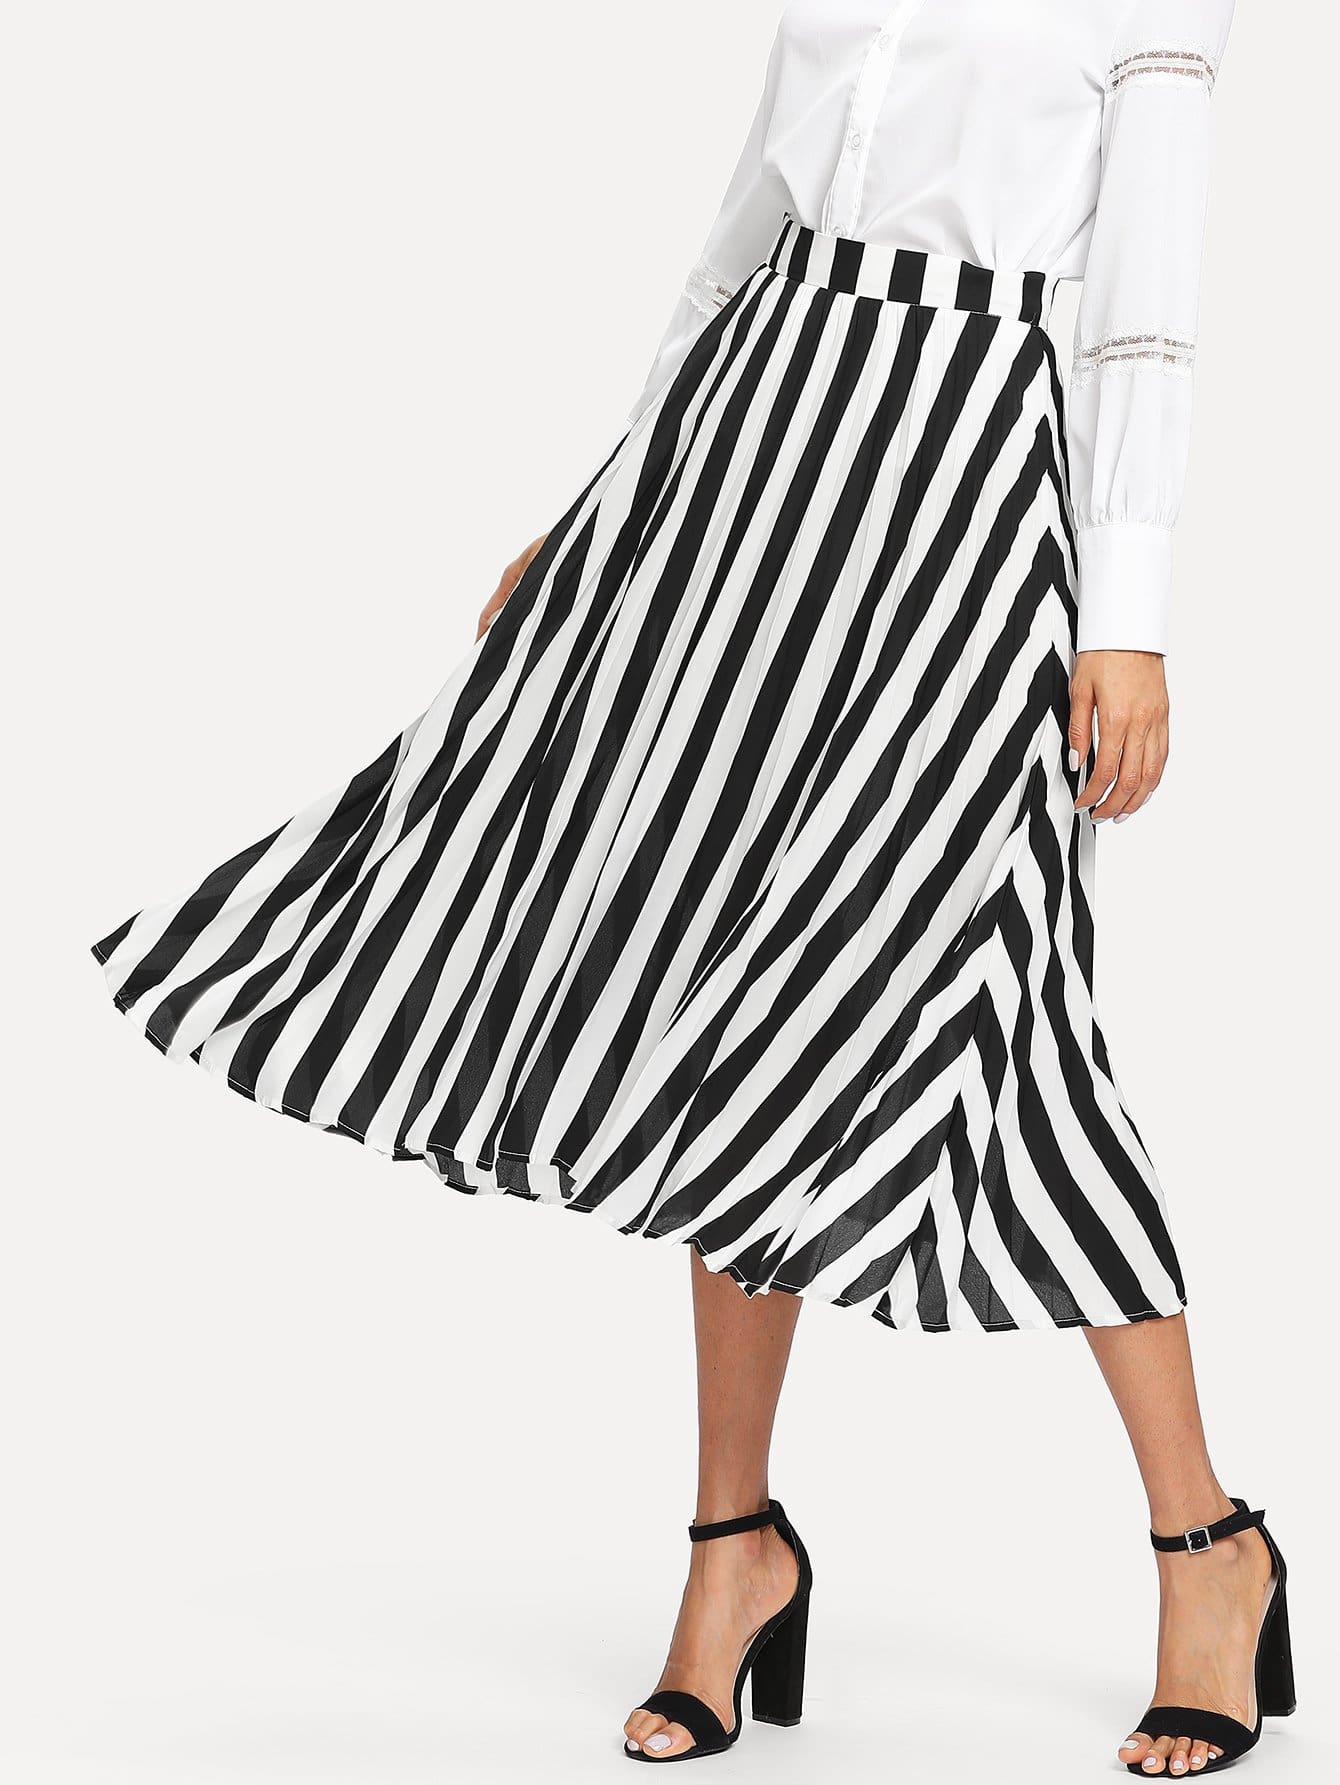 Band Waist Striped Swing Skirt elasticized waist swing skirt